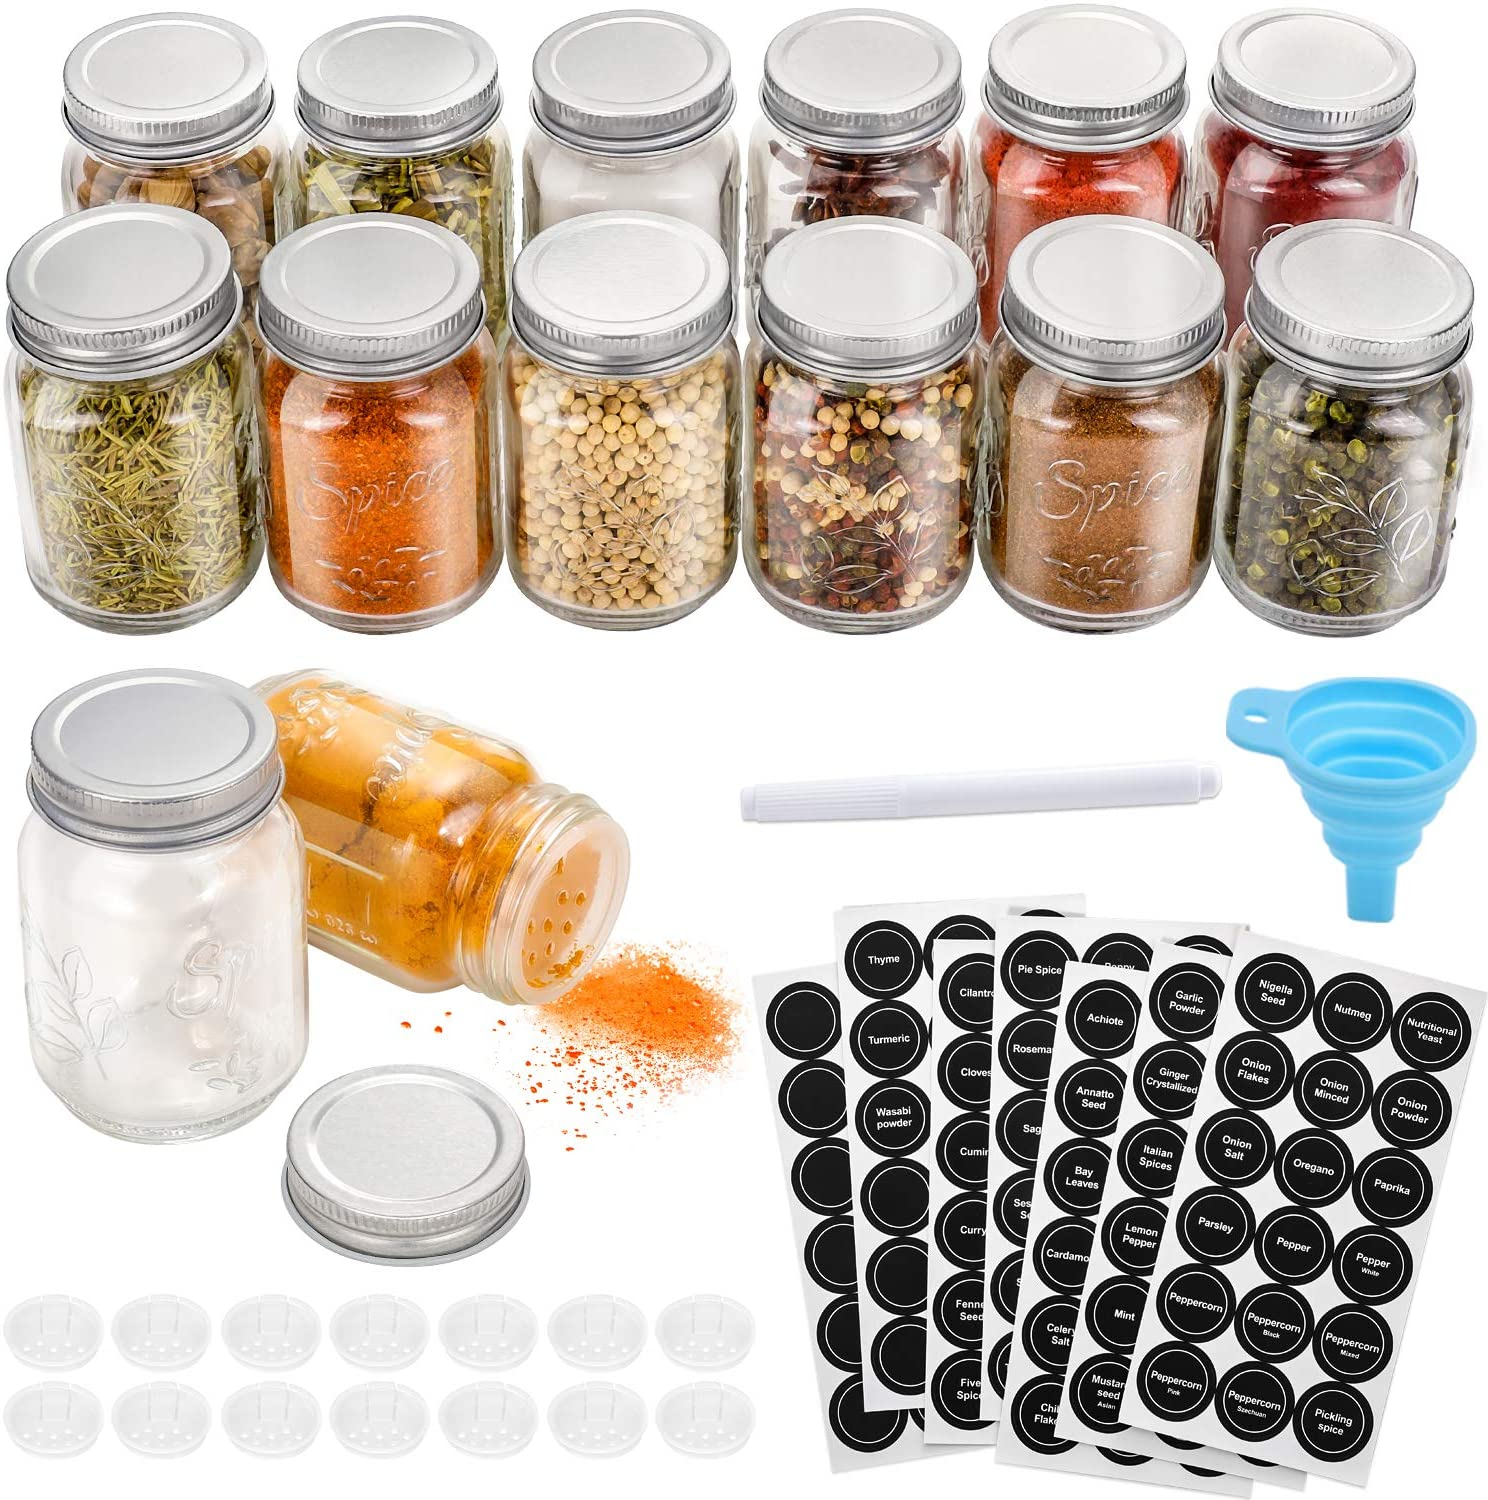 12Pcs Sturdy Clear Spice Bottle Storage Box with Sifter Lid for Kitchen Herb Hot